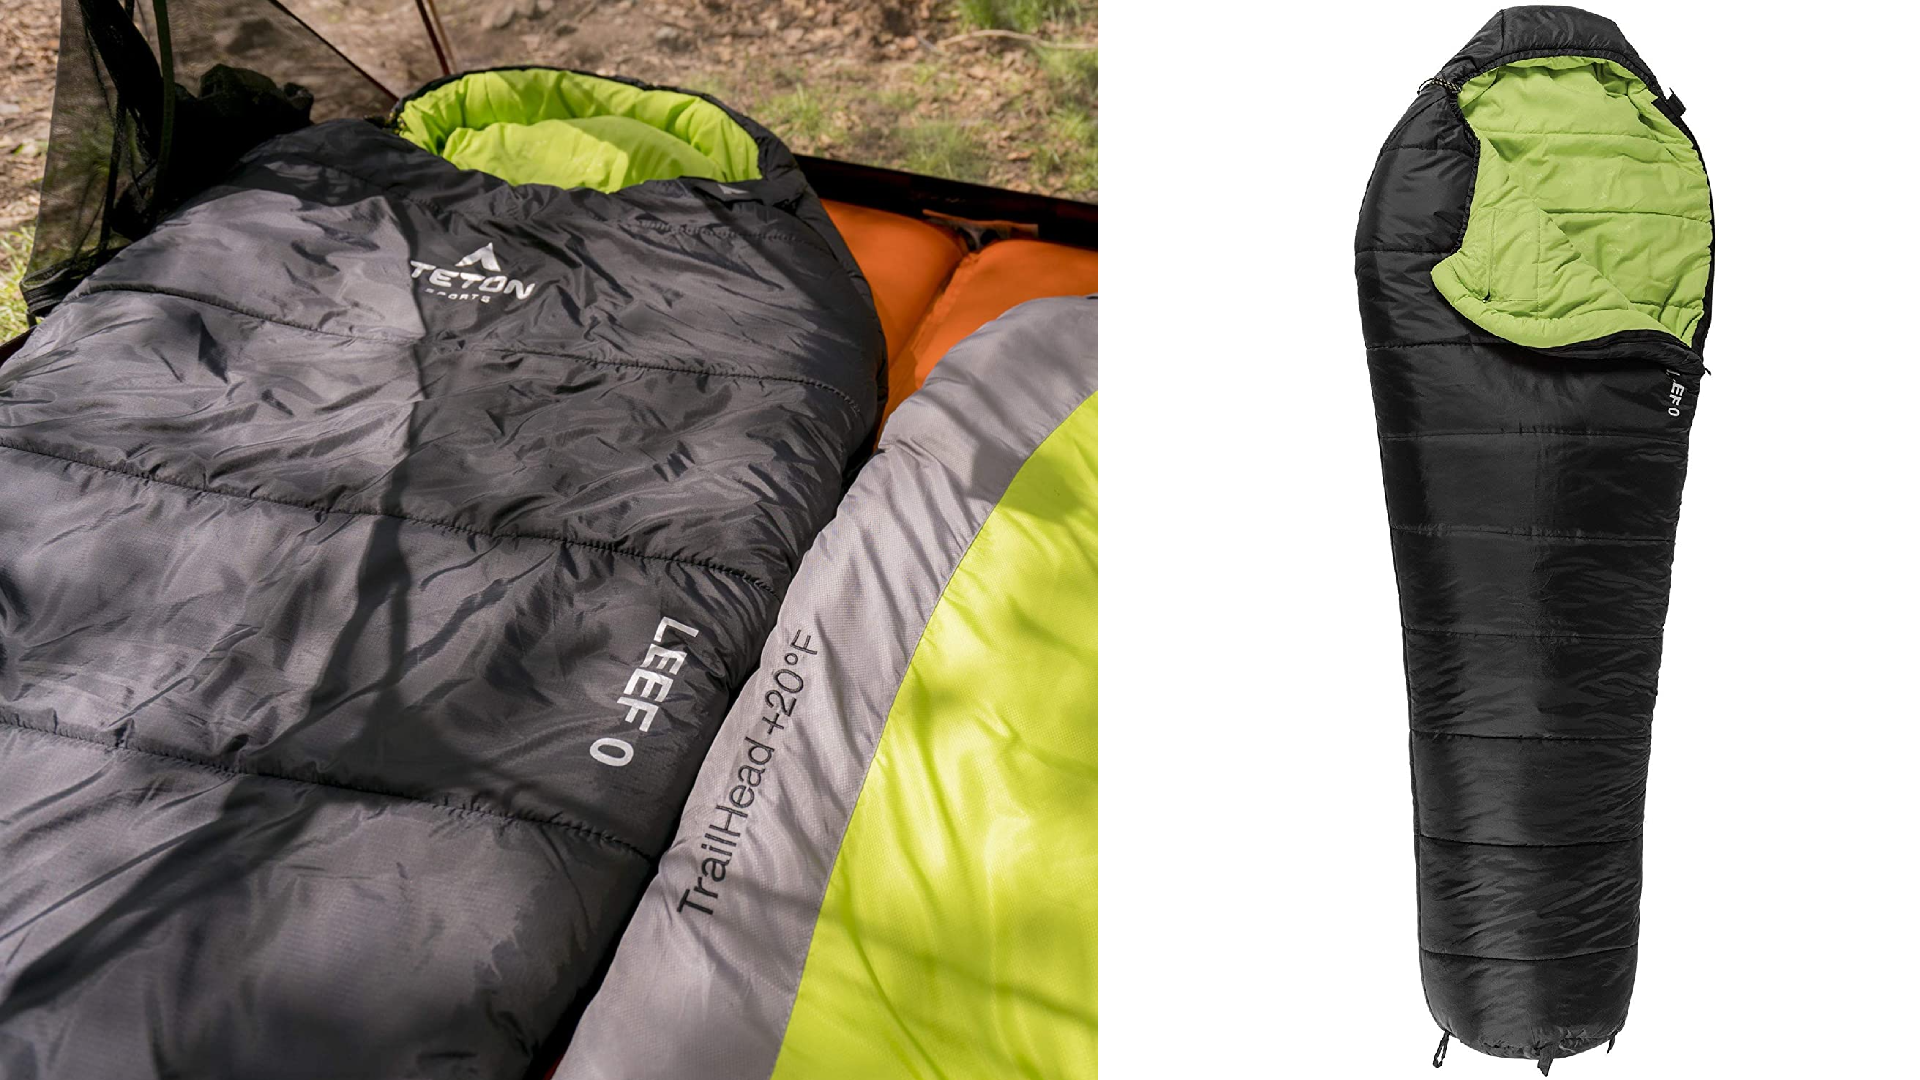 side by side of close up and full sleeping bag